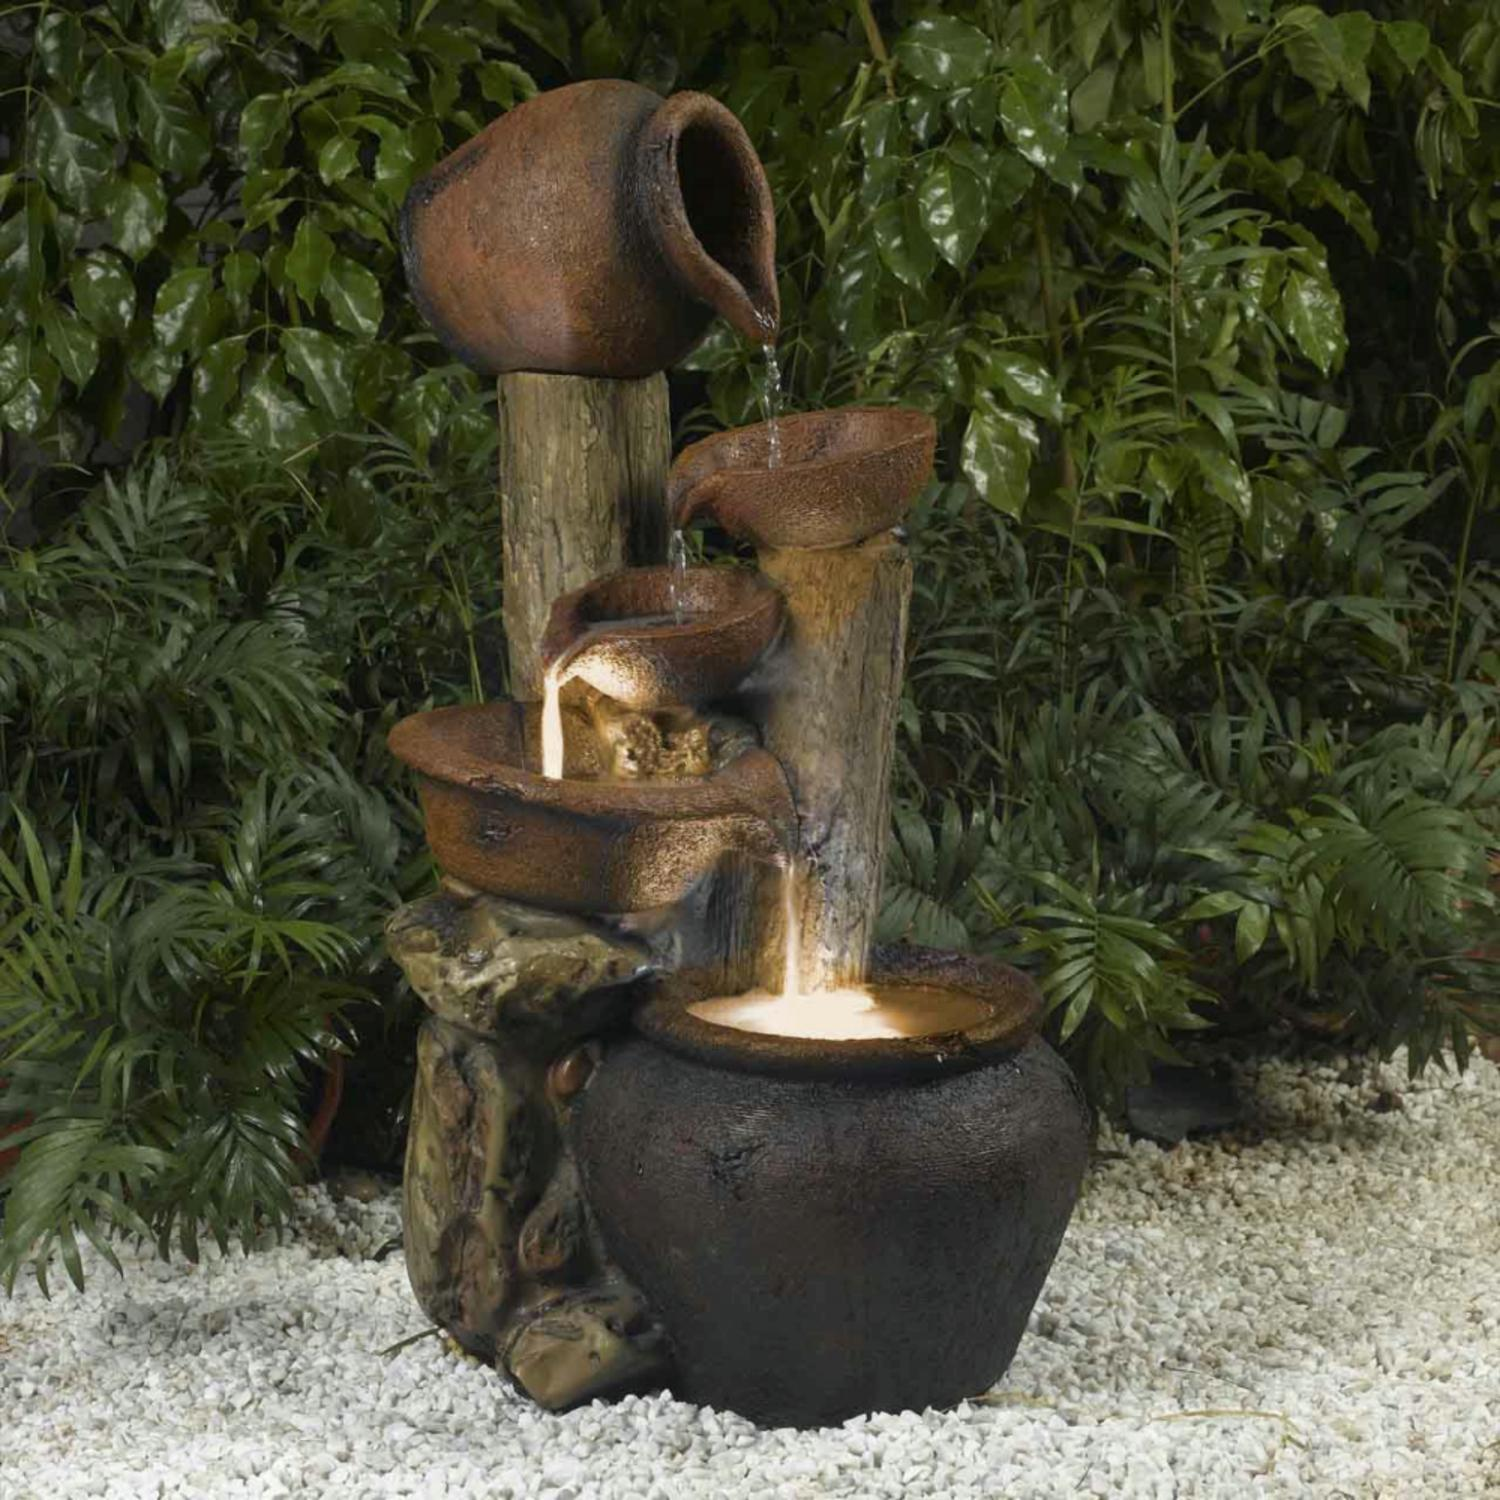 "33"" LED Lighted Rustic Rocks and Urn Pots Outdoor Patio Garden Water Fountain by CC Outdoor Living"